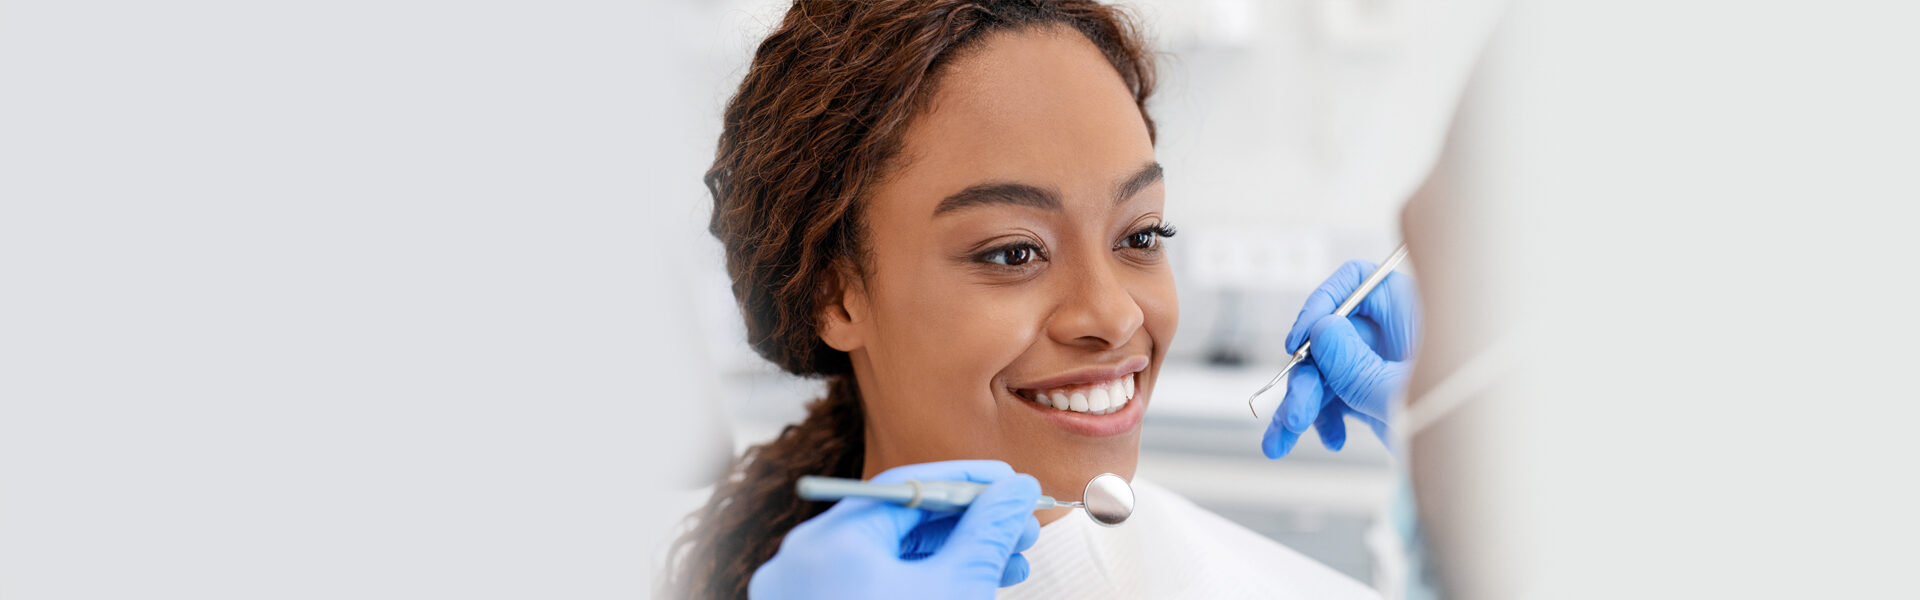 Extractions in Auburn, WA - Wisdom Tooth Extraction Near You